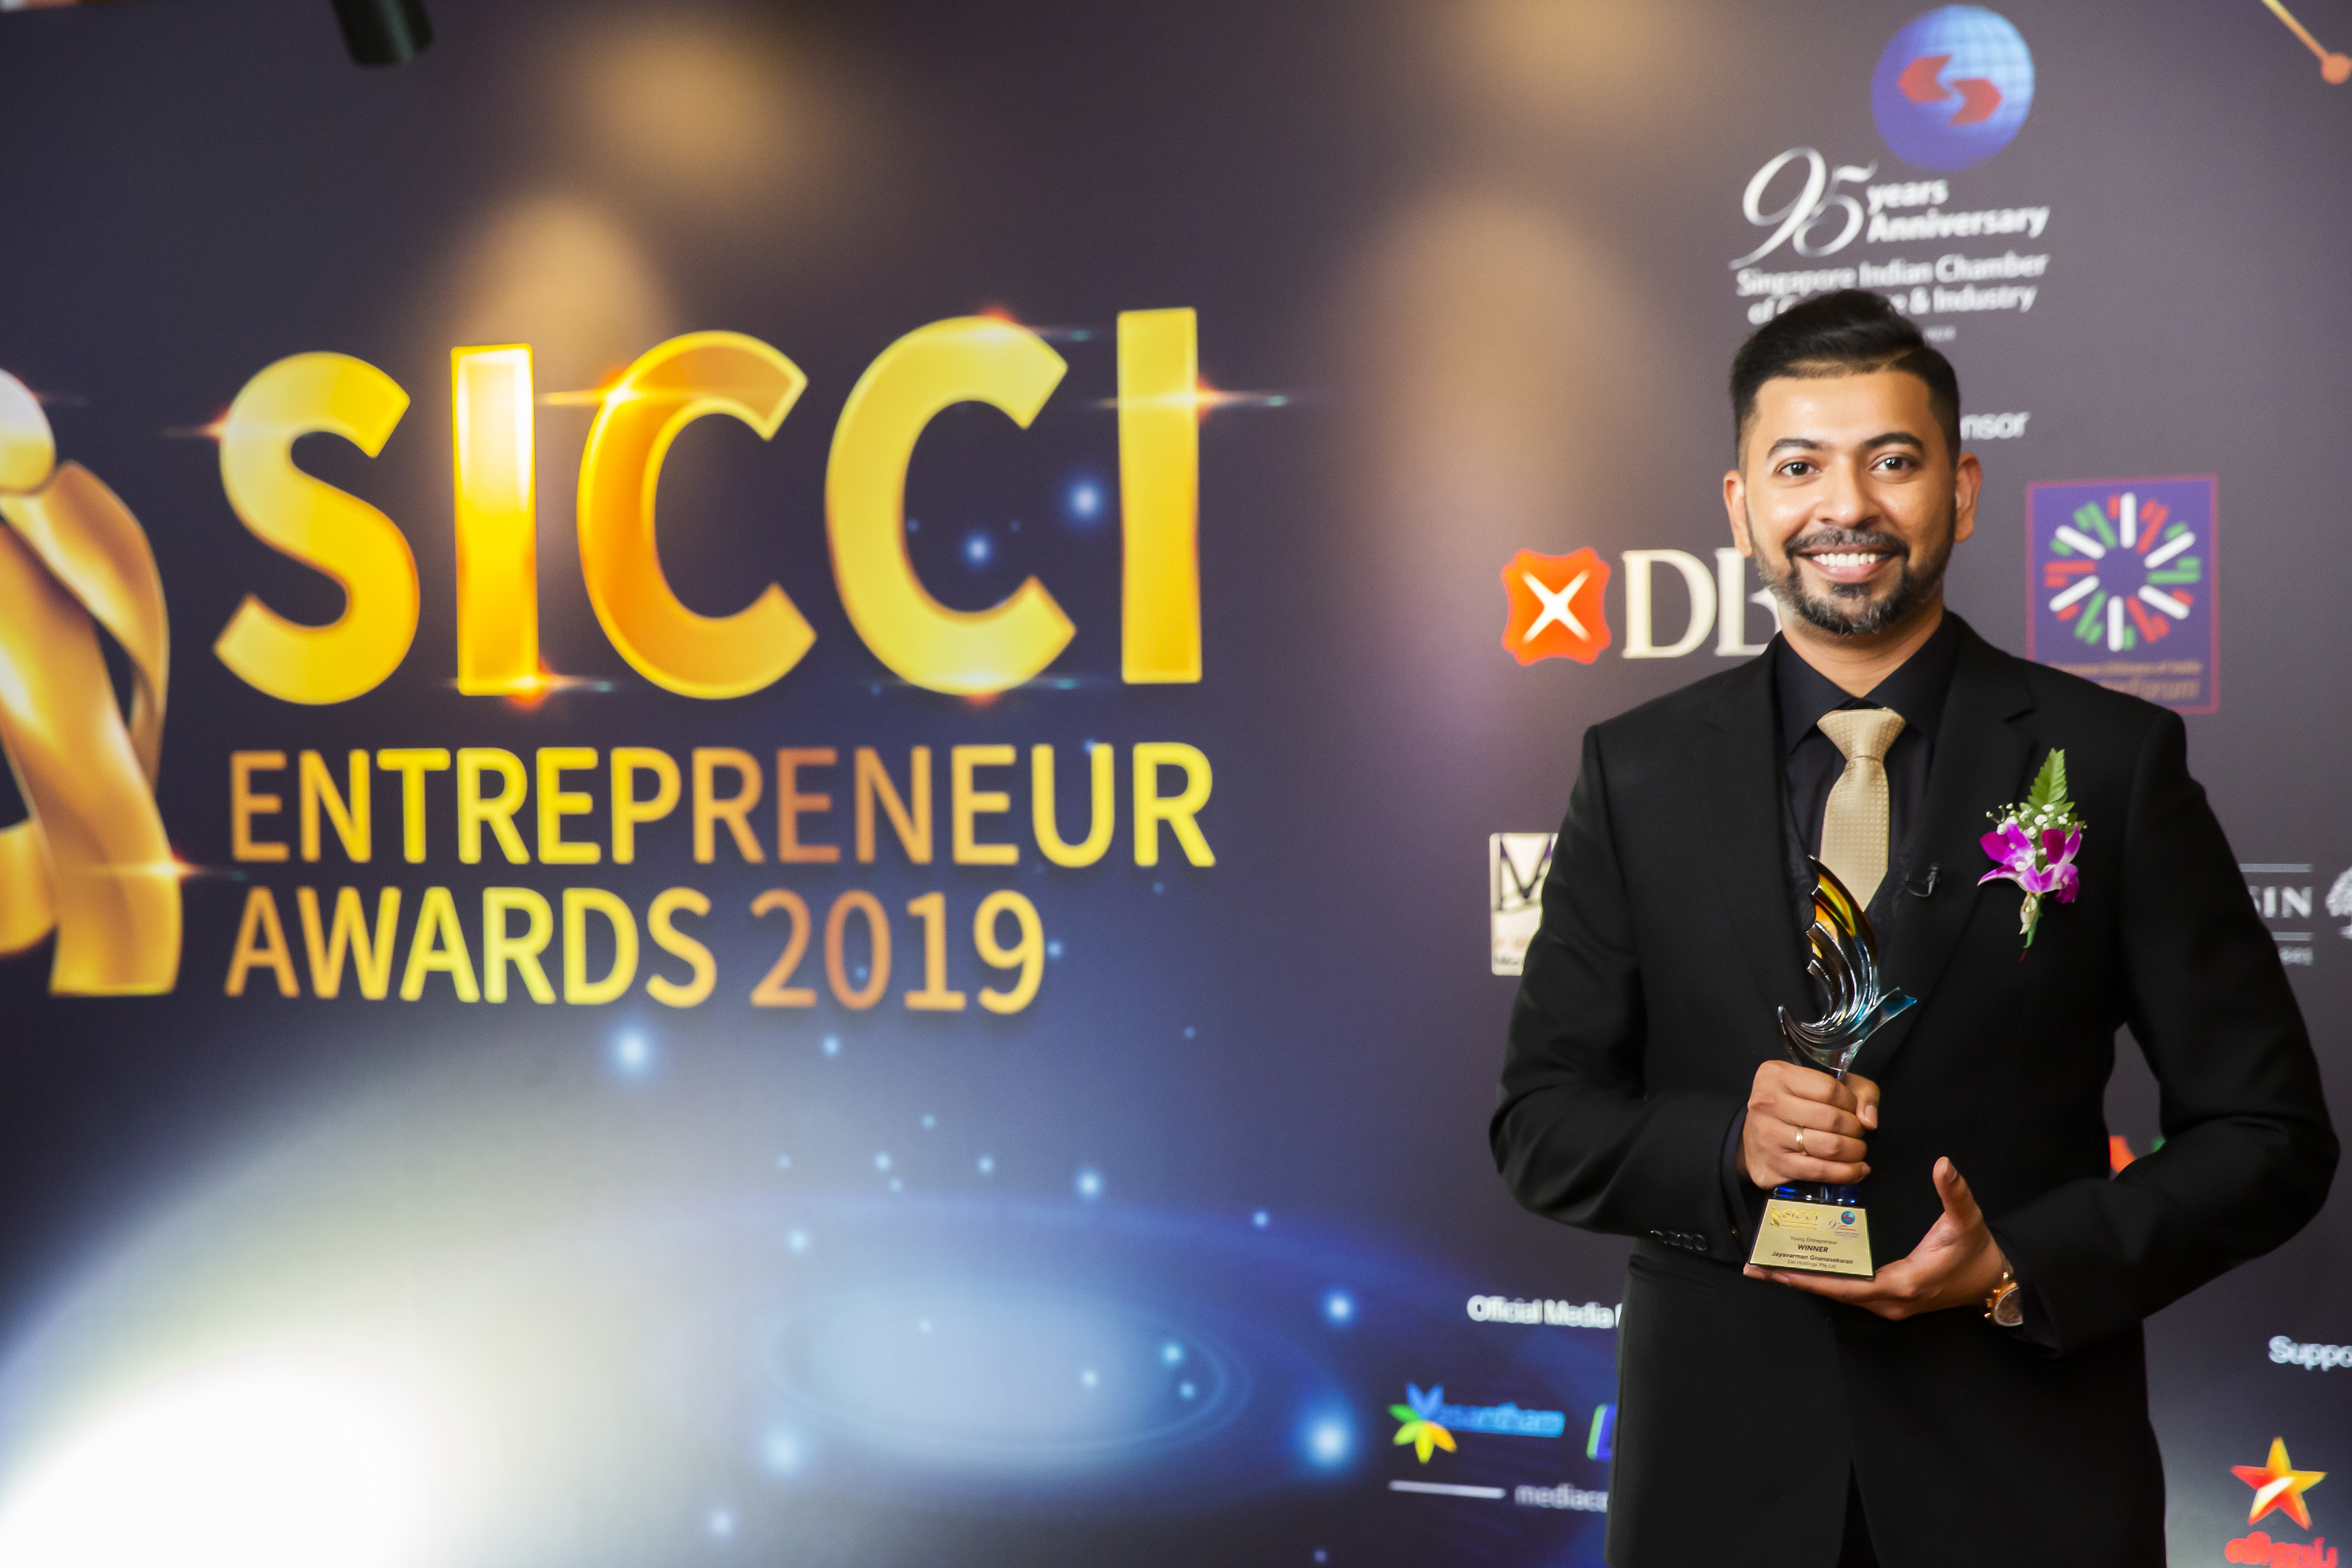 Jayavarman Gnanansekaran, CEO Dei Holding Pte Ltd poses with the  Young Entrepreneur Award at the 2019 SICCI Awards ceremony at MBS Singapore. Photo Courtesy: SICCI